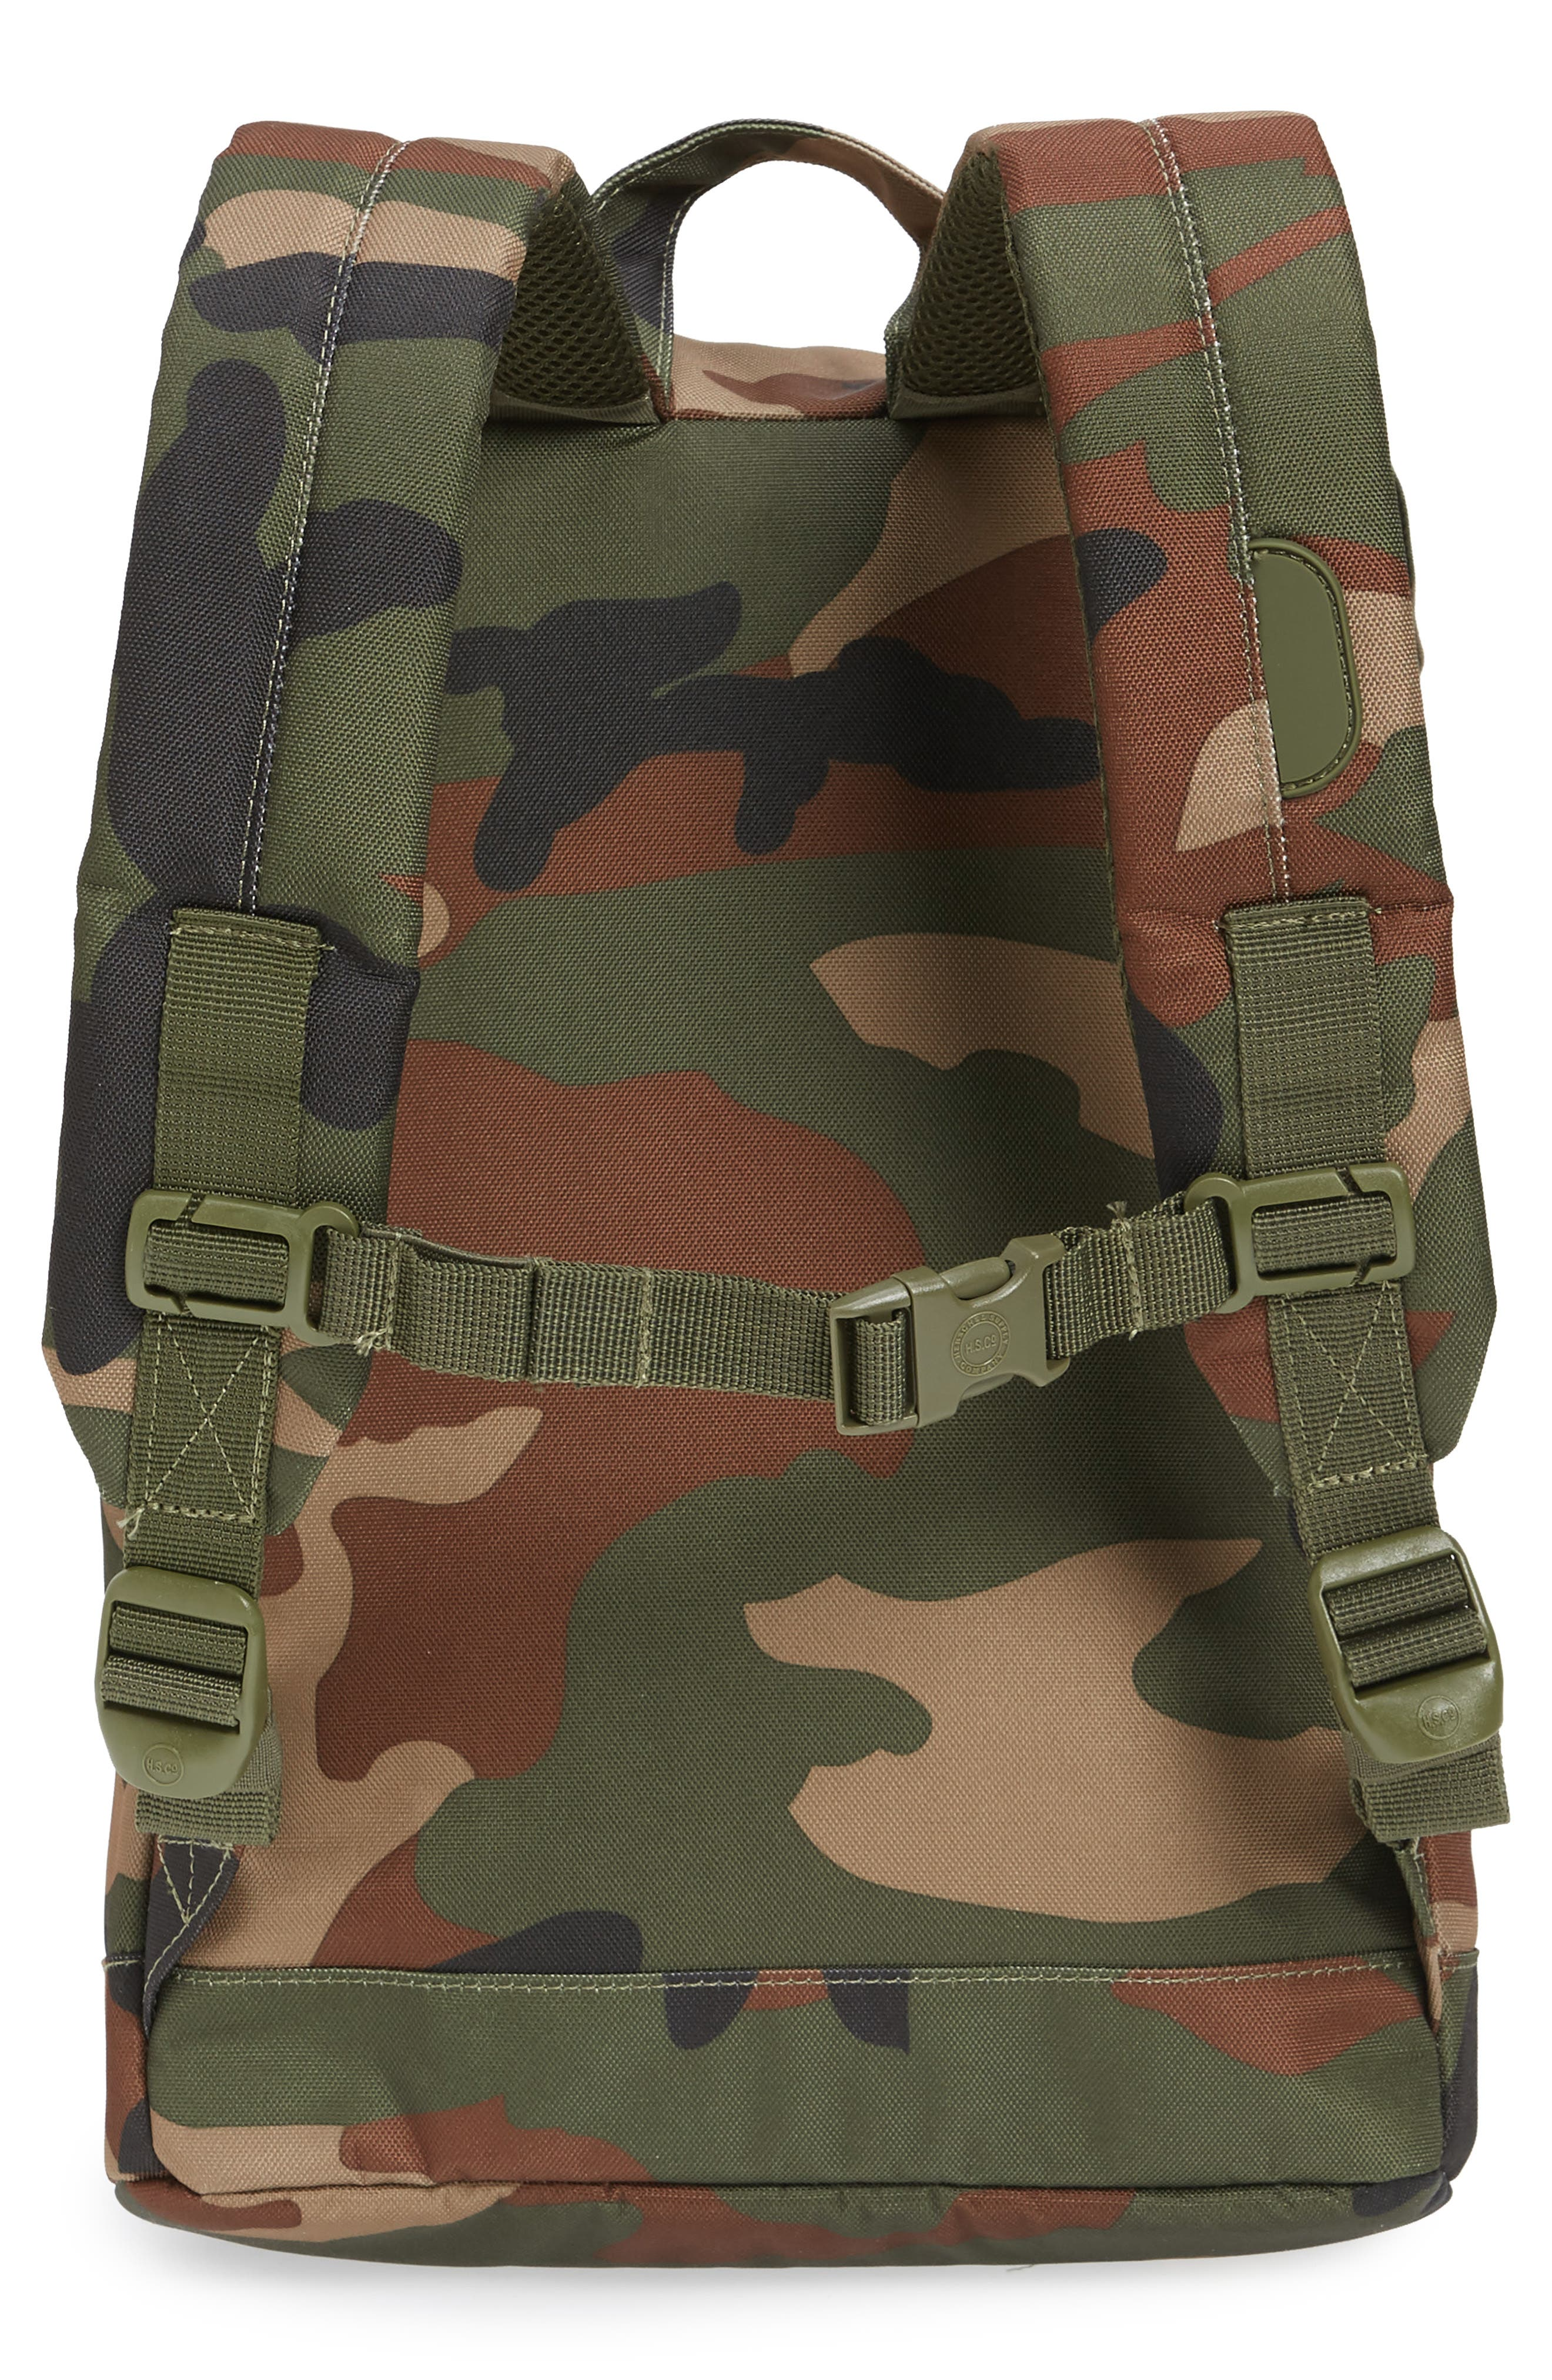 Retreat Camo Backpack,                             Alternate thumbnail 2, color,                             Woodland Camo/ Army Rubber